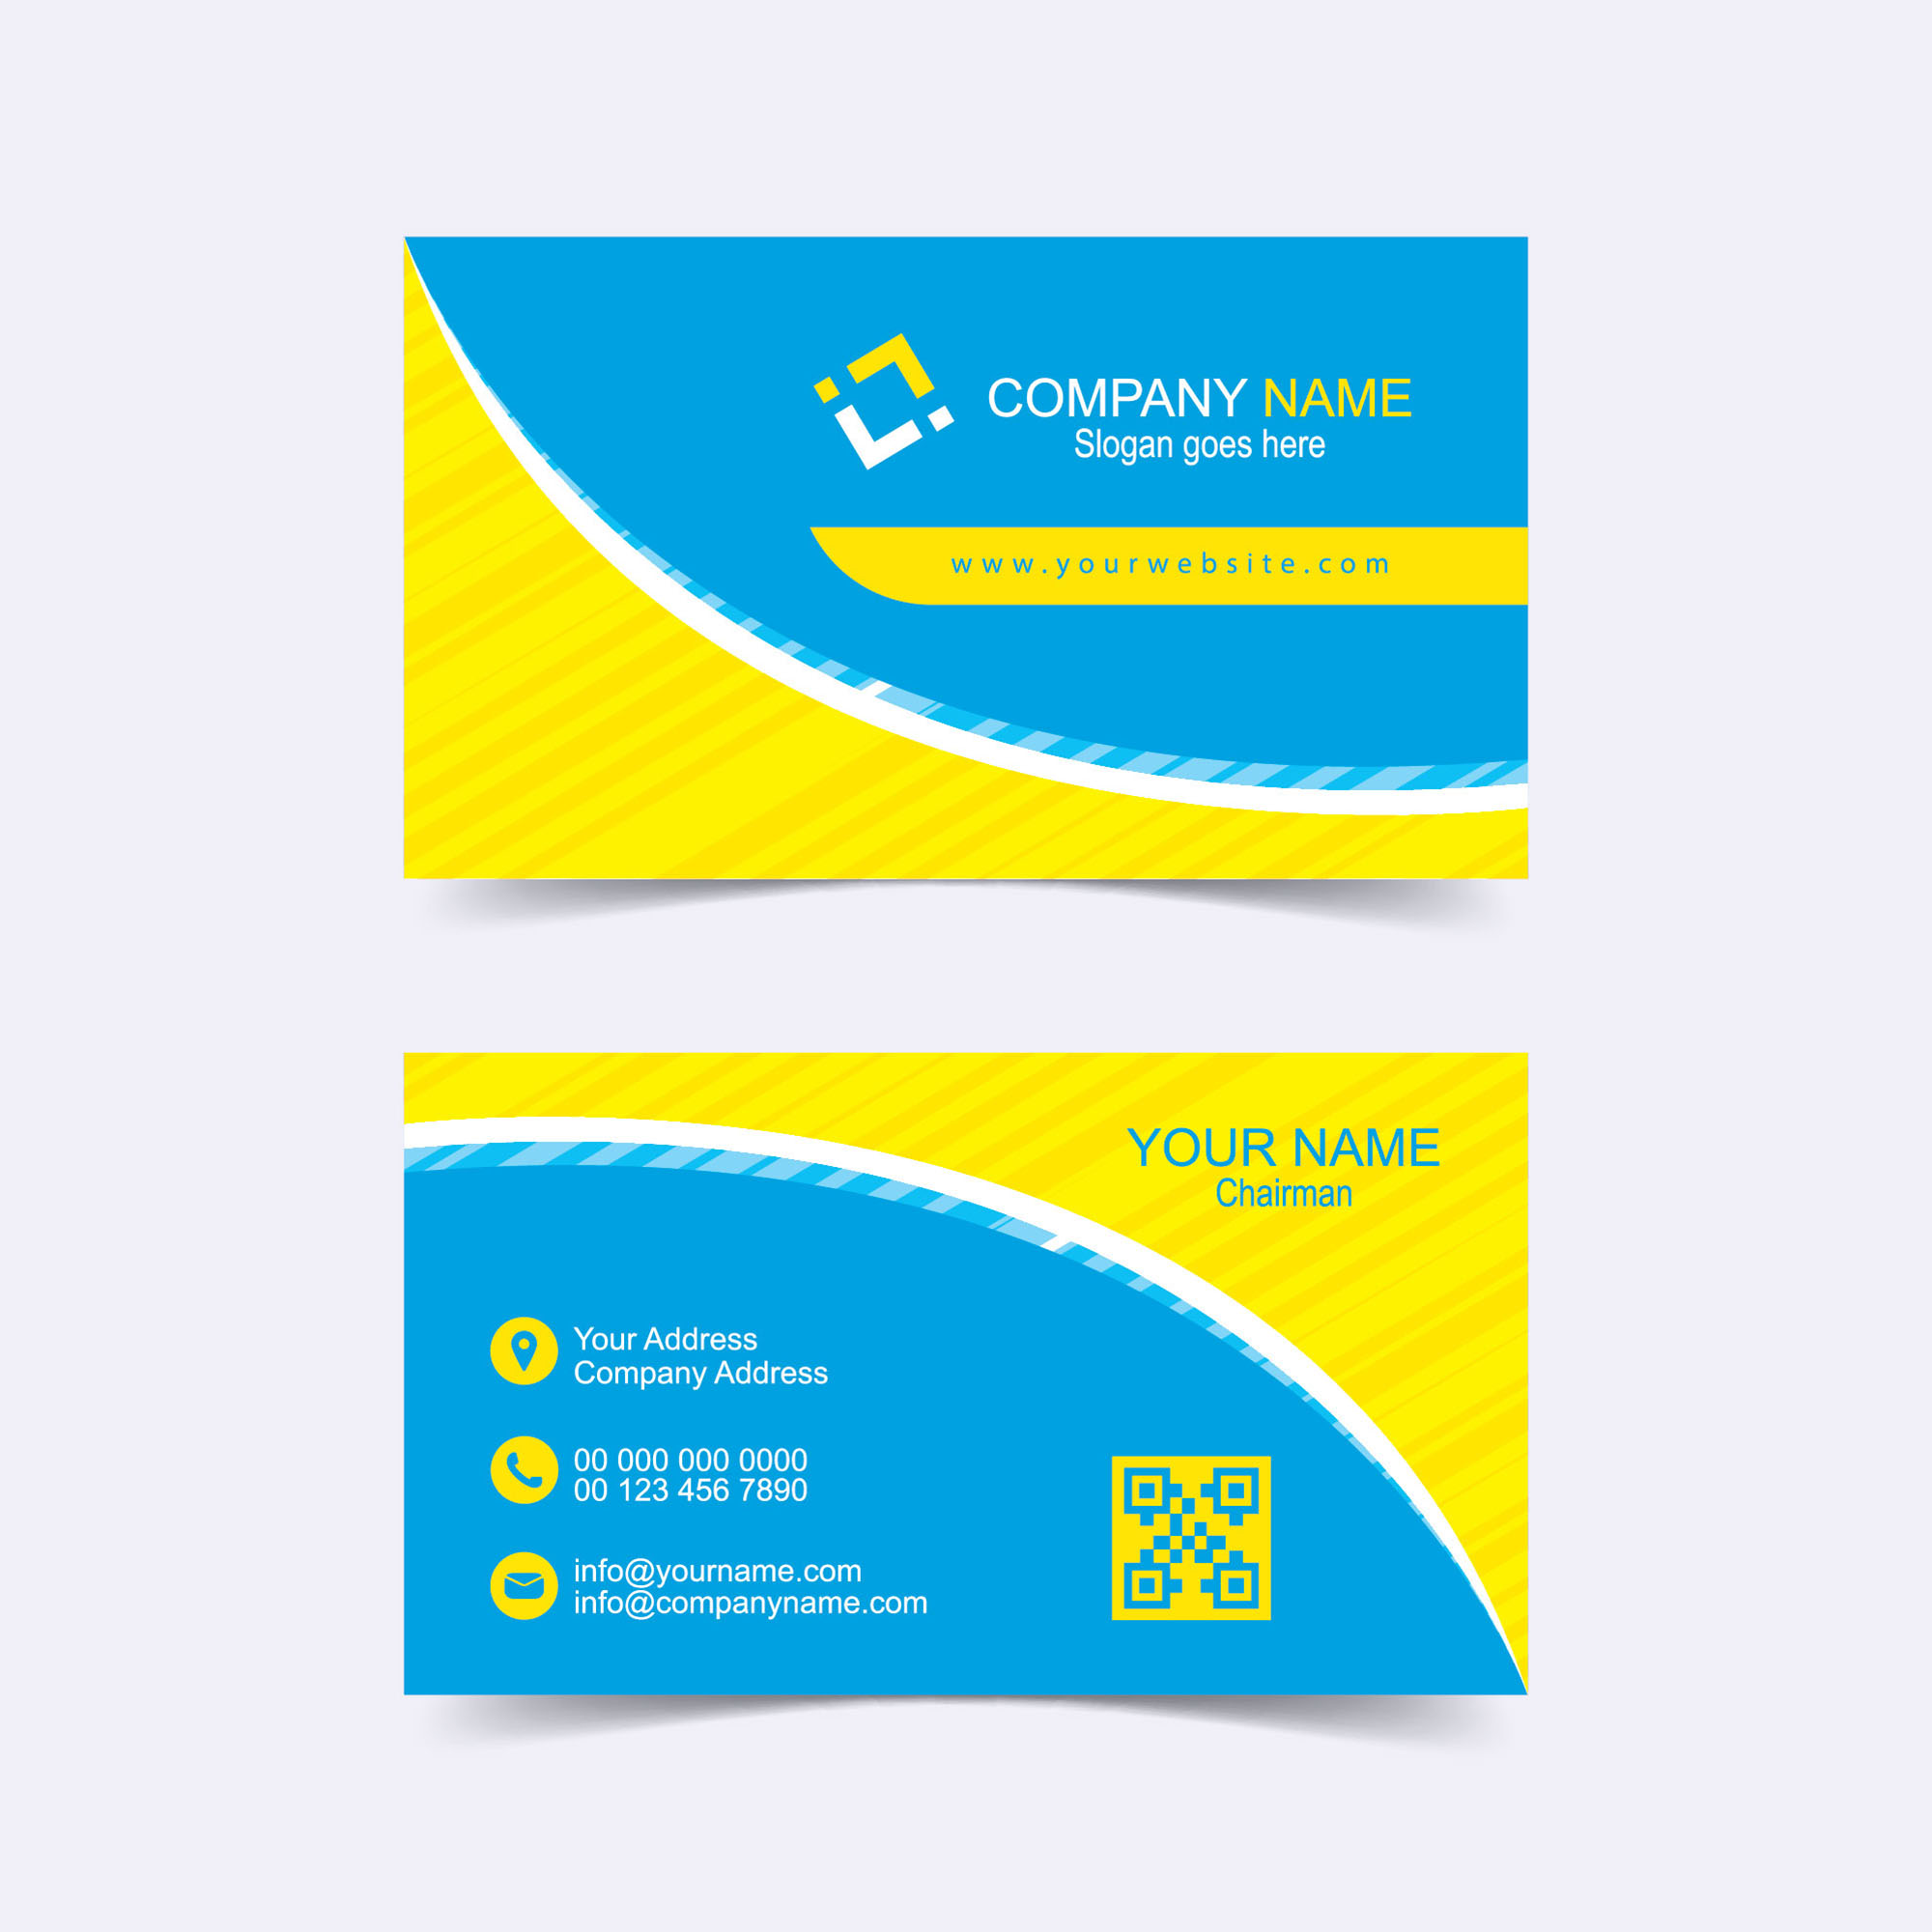 Free corporate business card template wisxi business card business cards business card design business card template design templates cheaphphosting Images